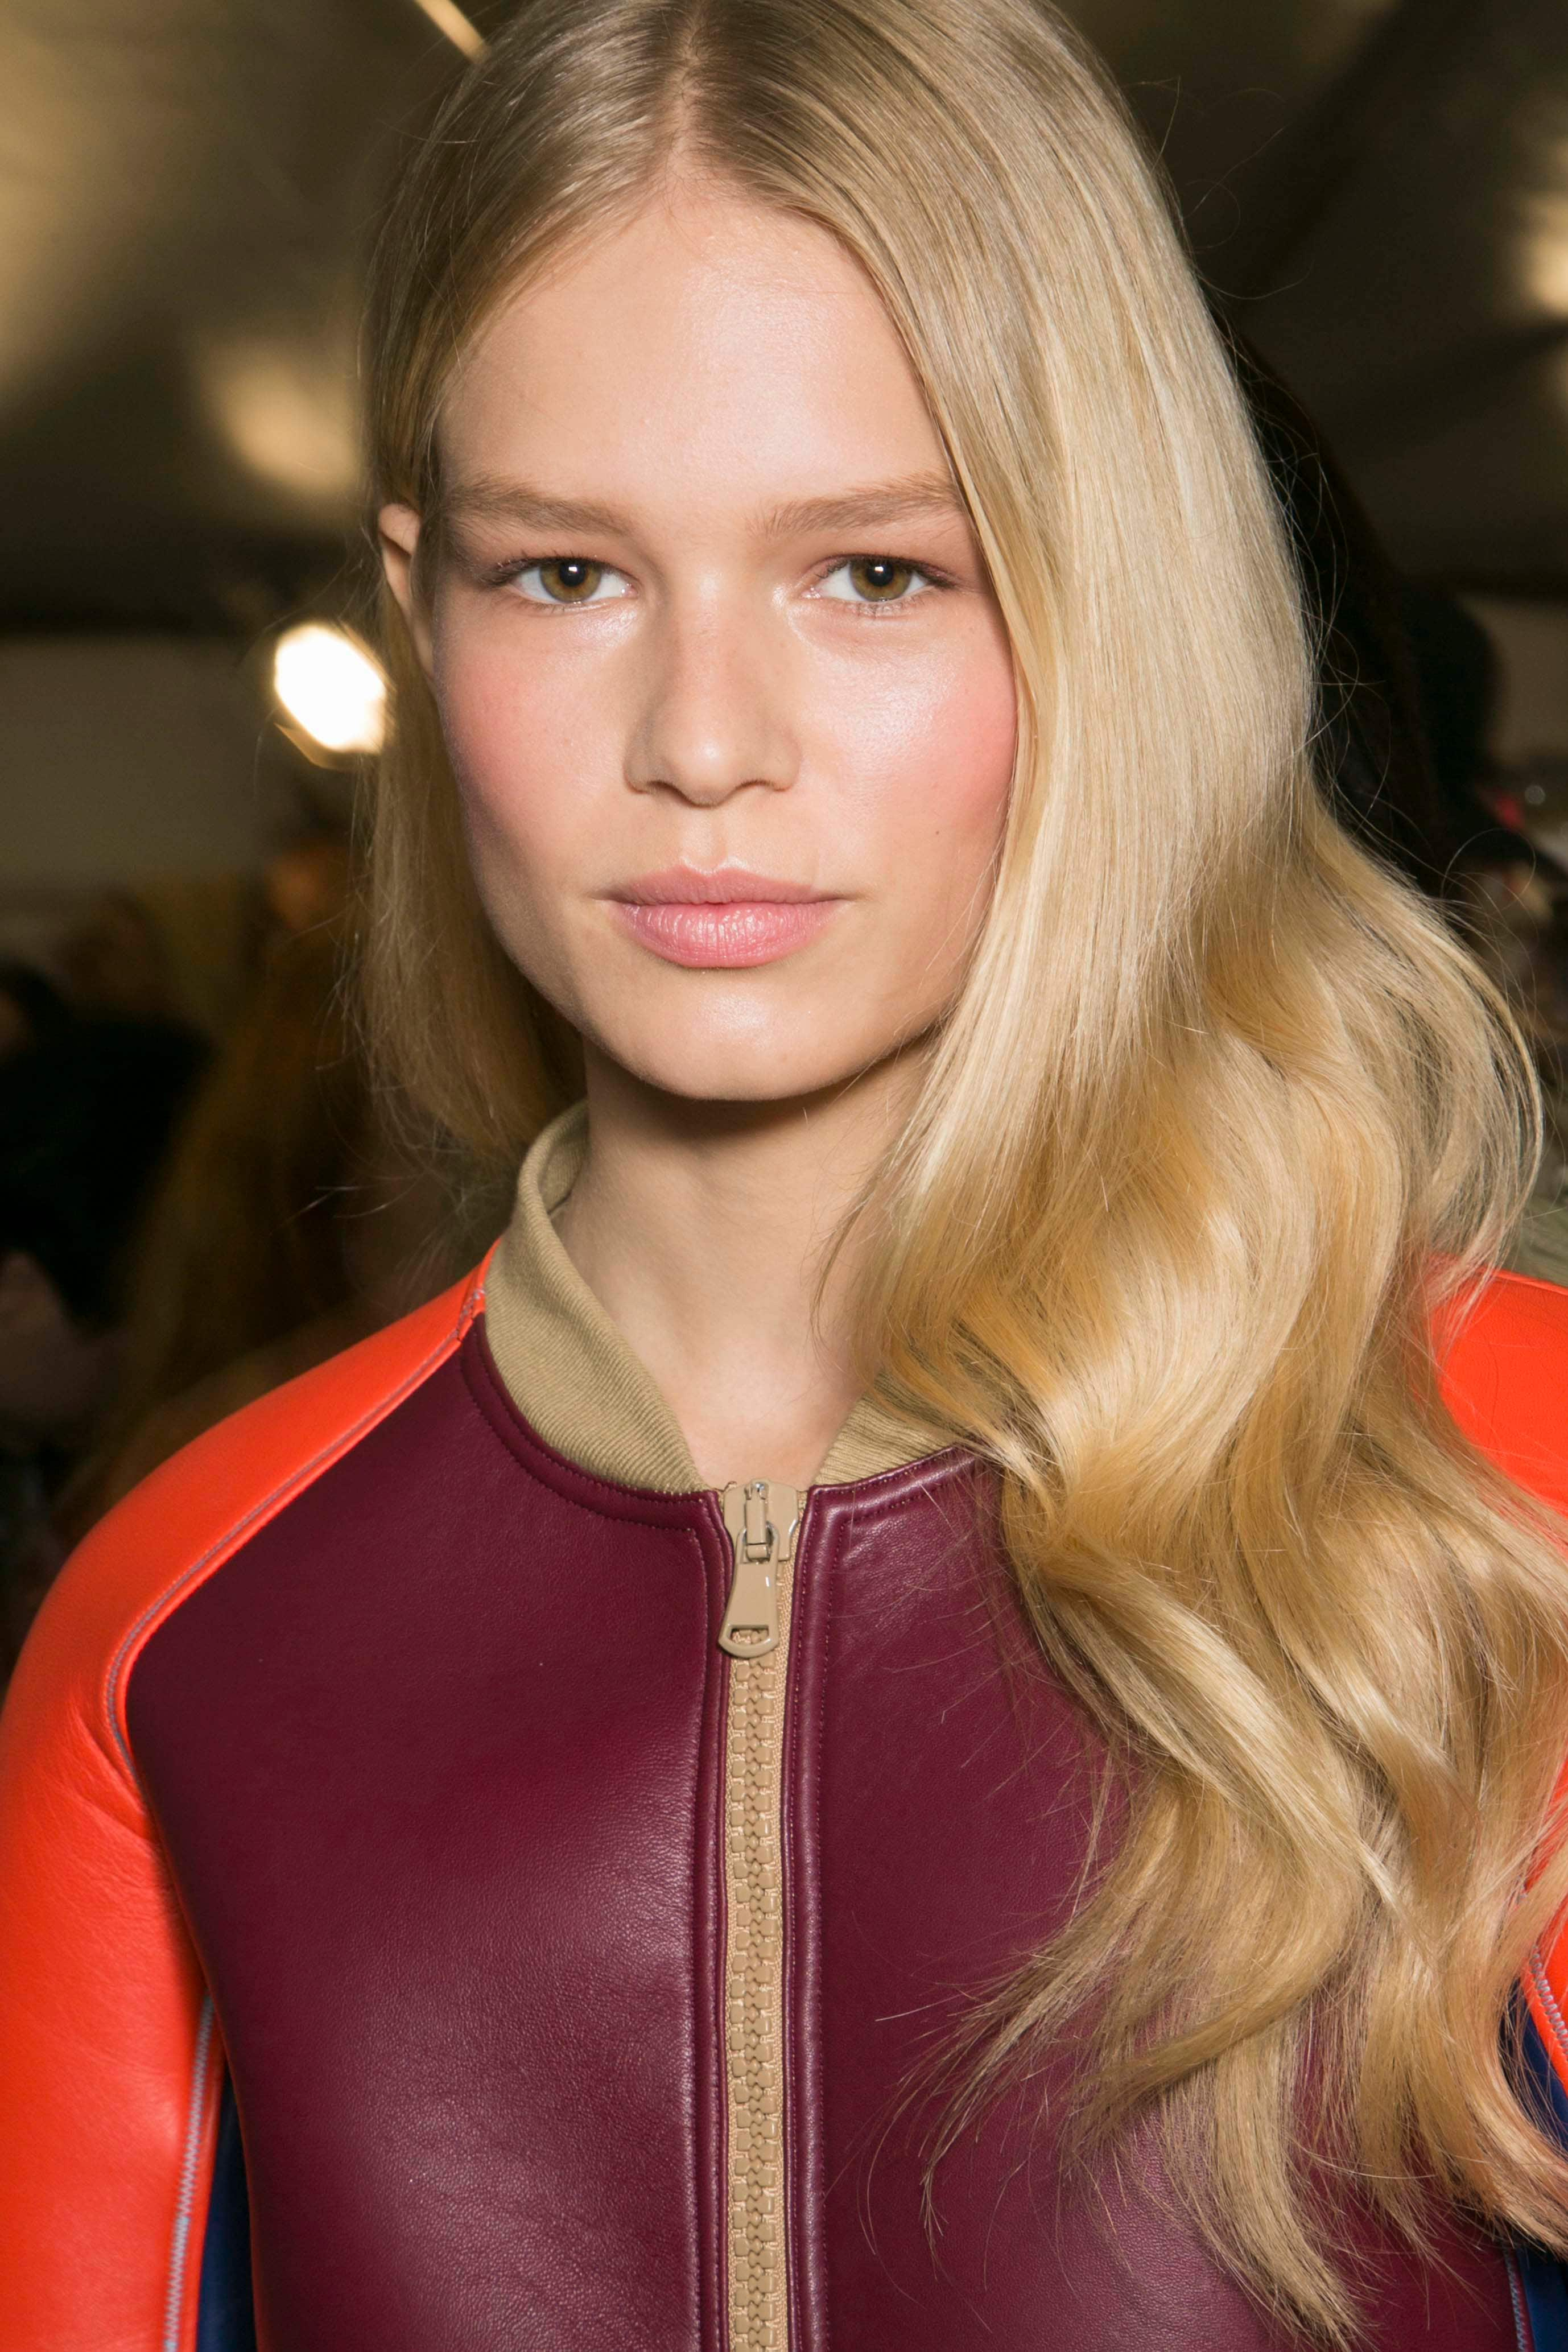 Hair Color Ideas For Long Hair Our Fave Hues From Classic To Bold